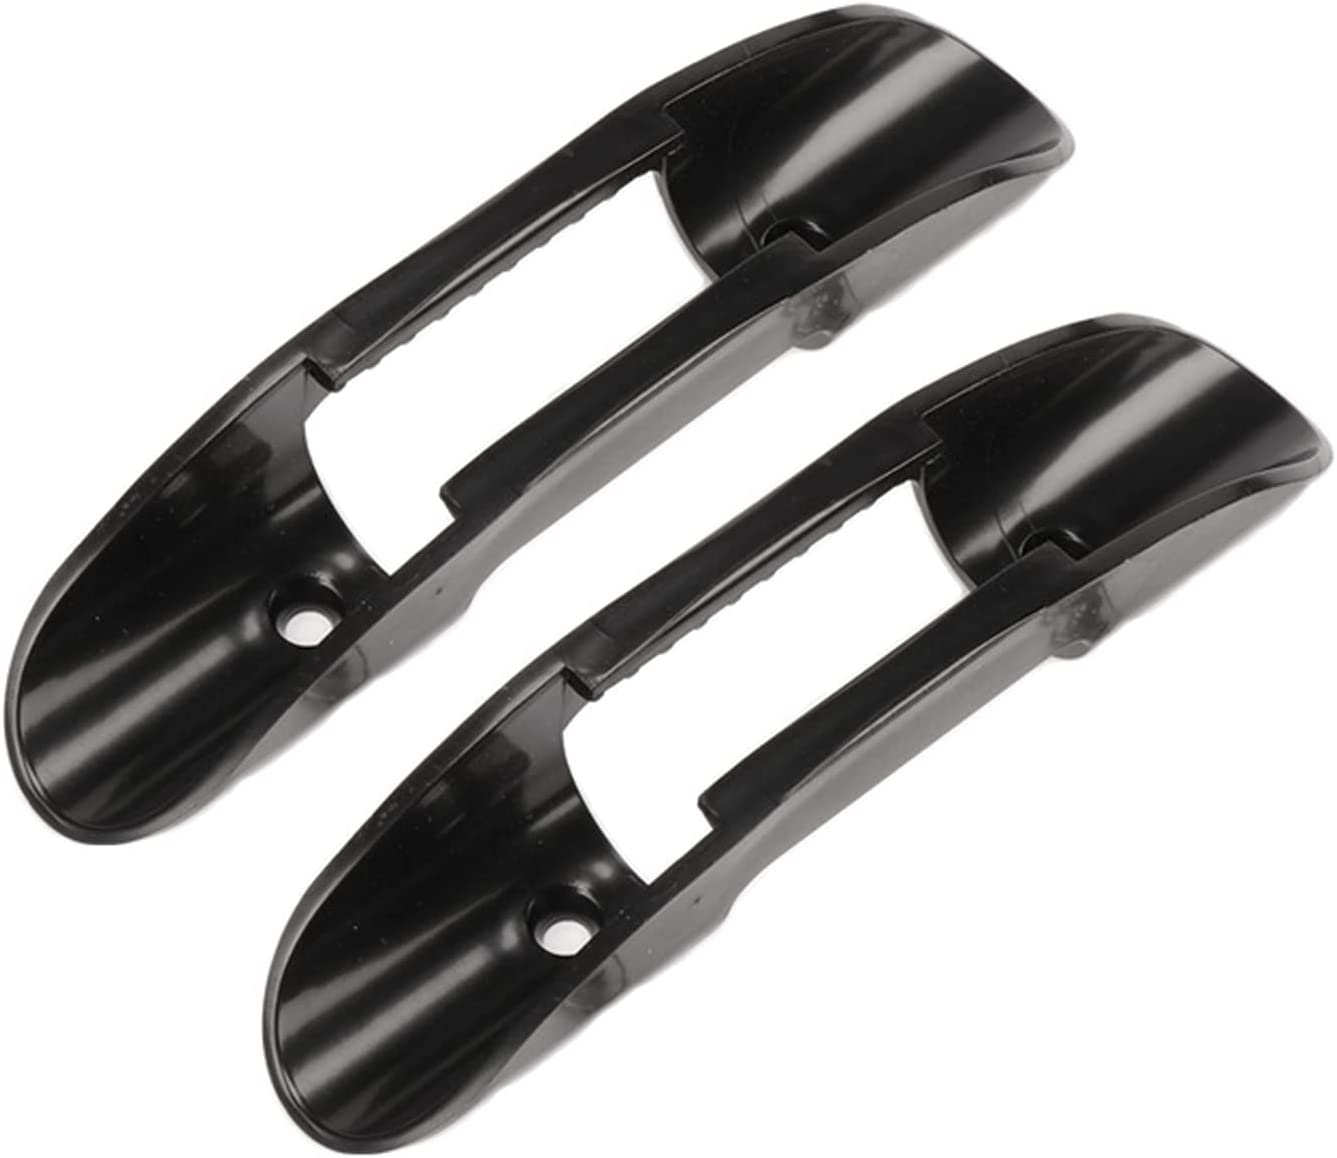 traderplus 1 Pair Kayak online shopping Al sold out. Paddle Holder Universal Ka Clips Plastic